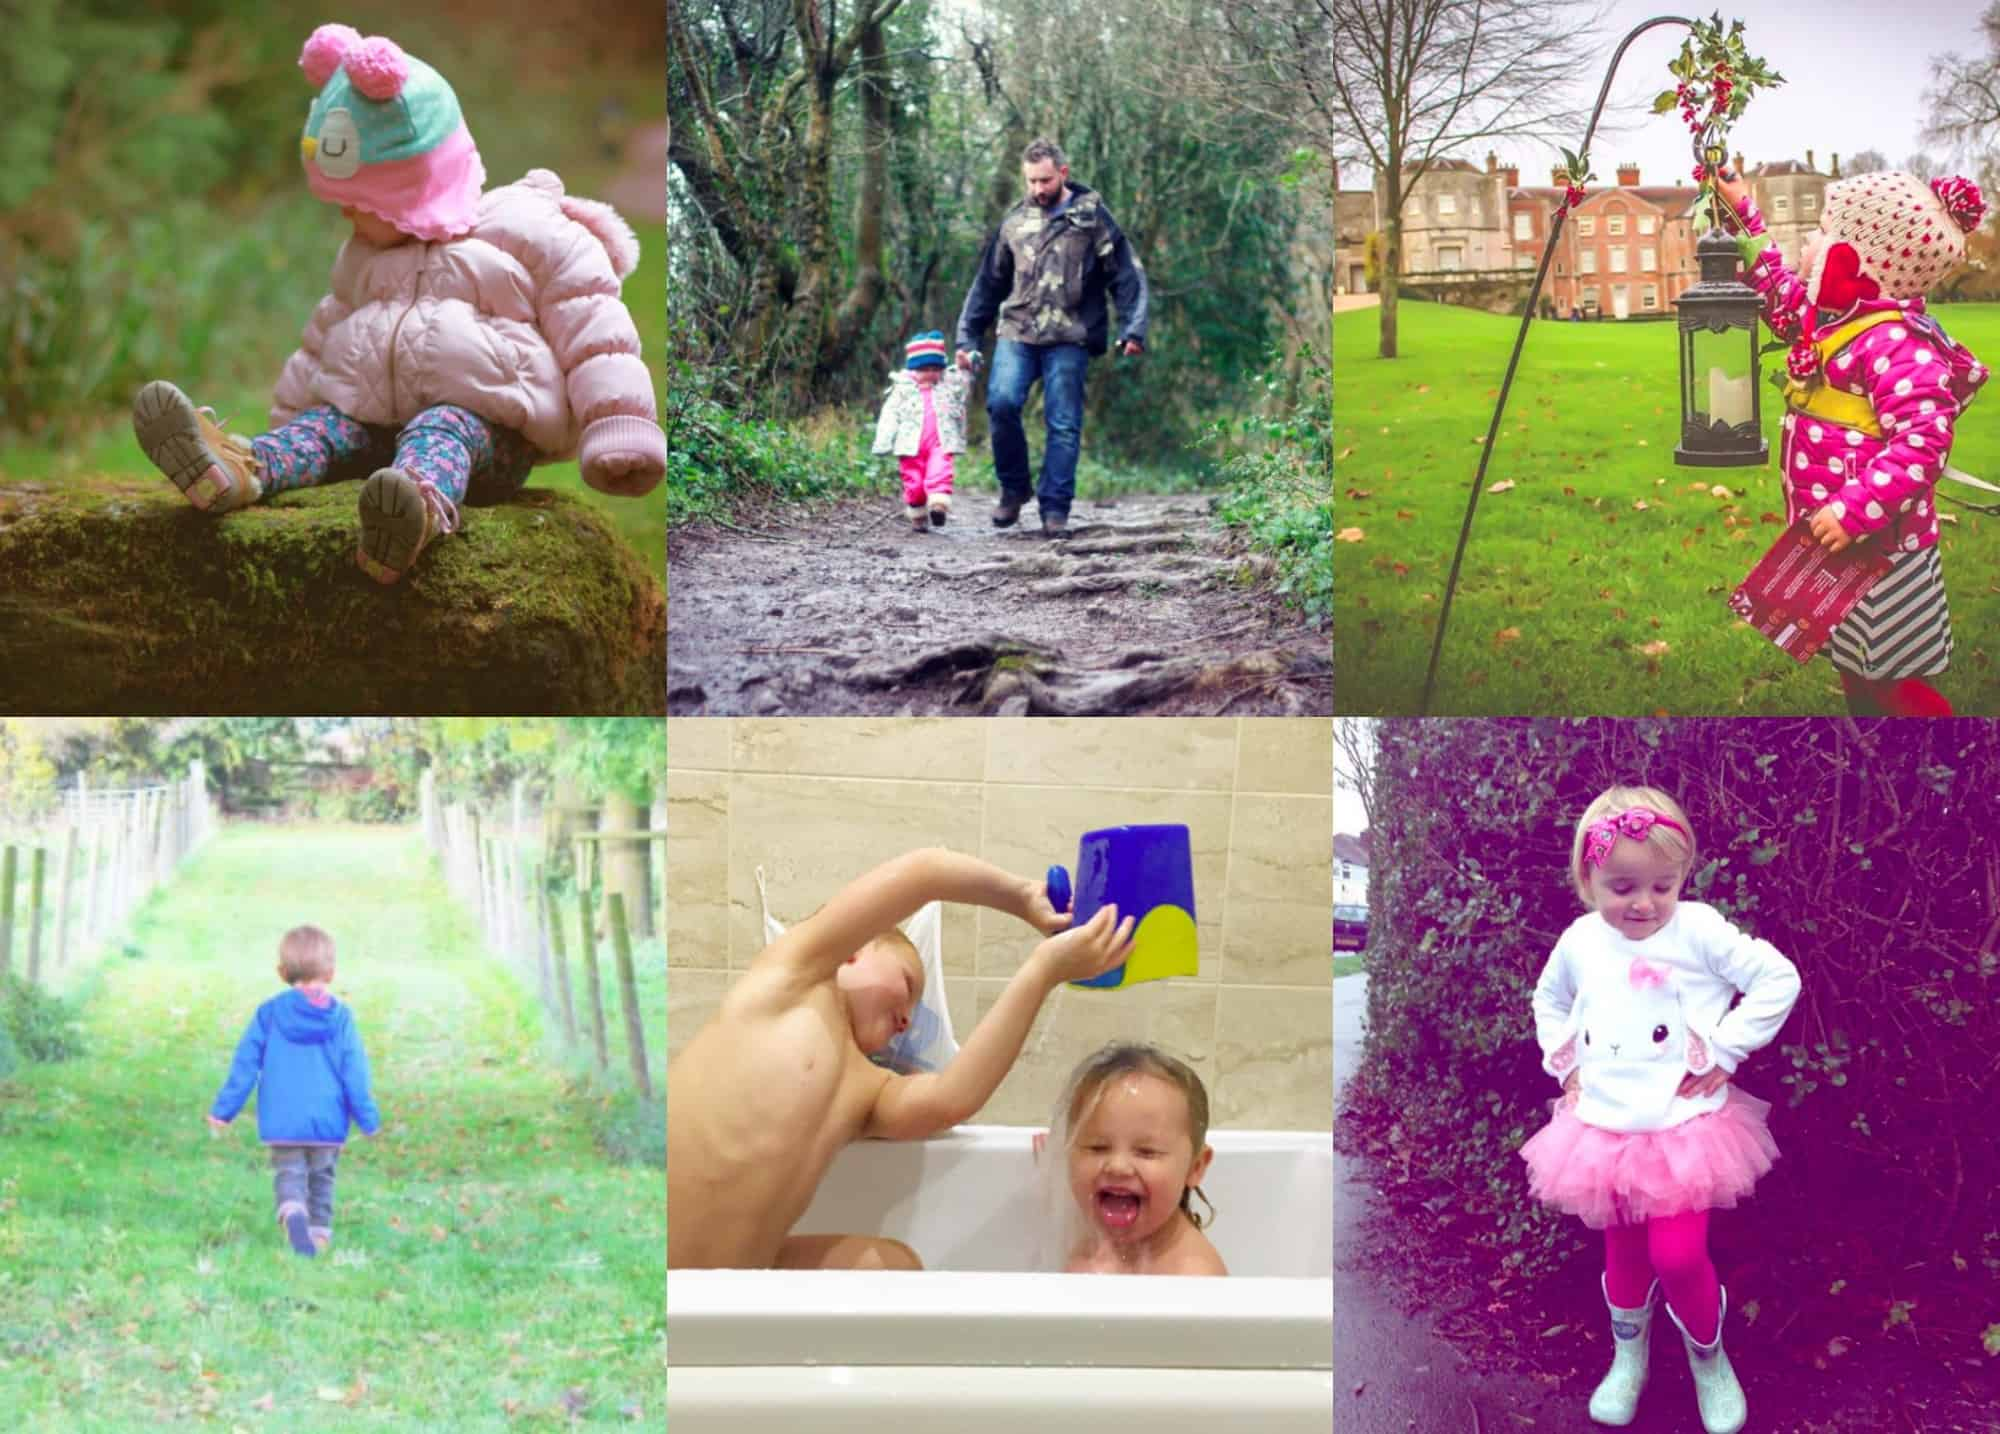 A collection of images from week three of #LittleFierceOnes an Instagram community